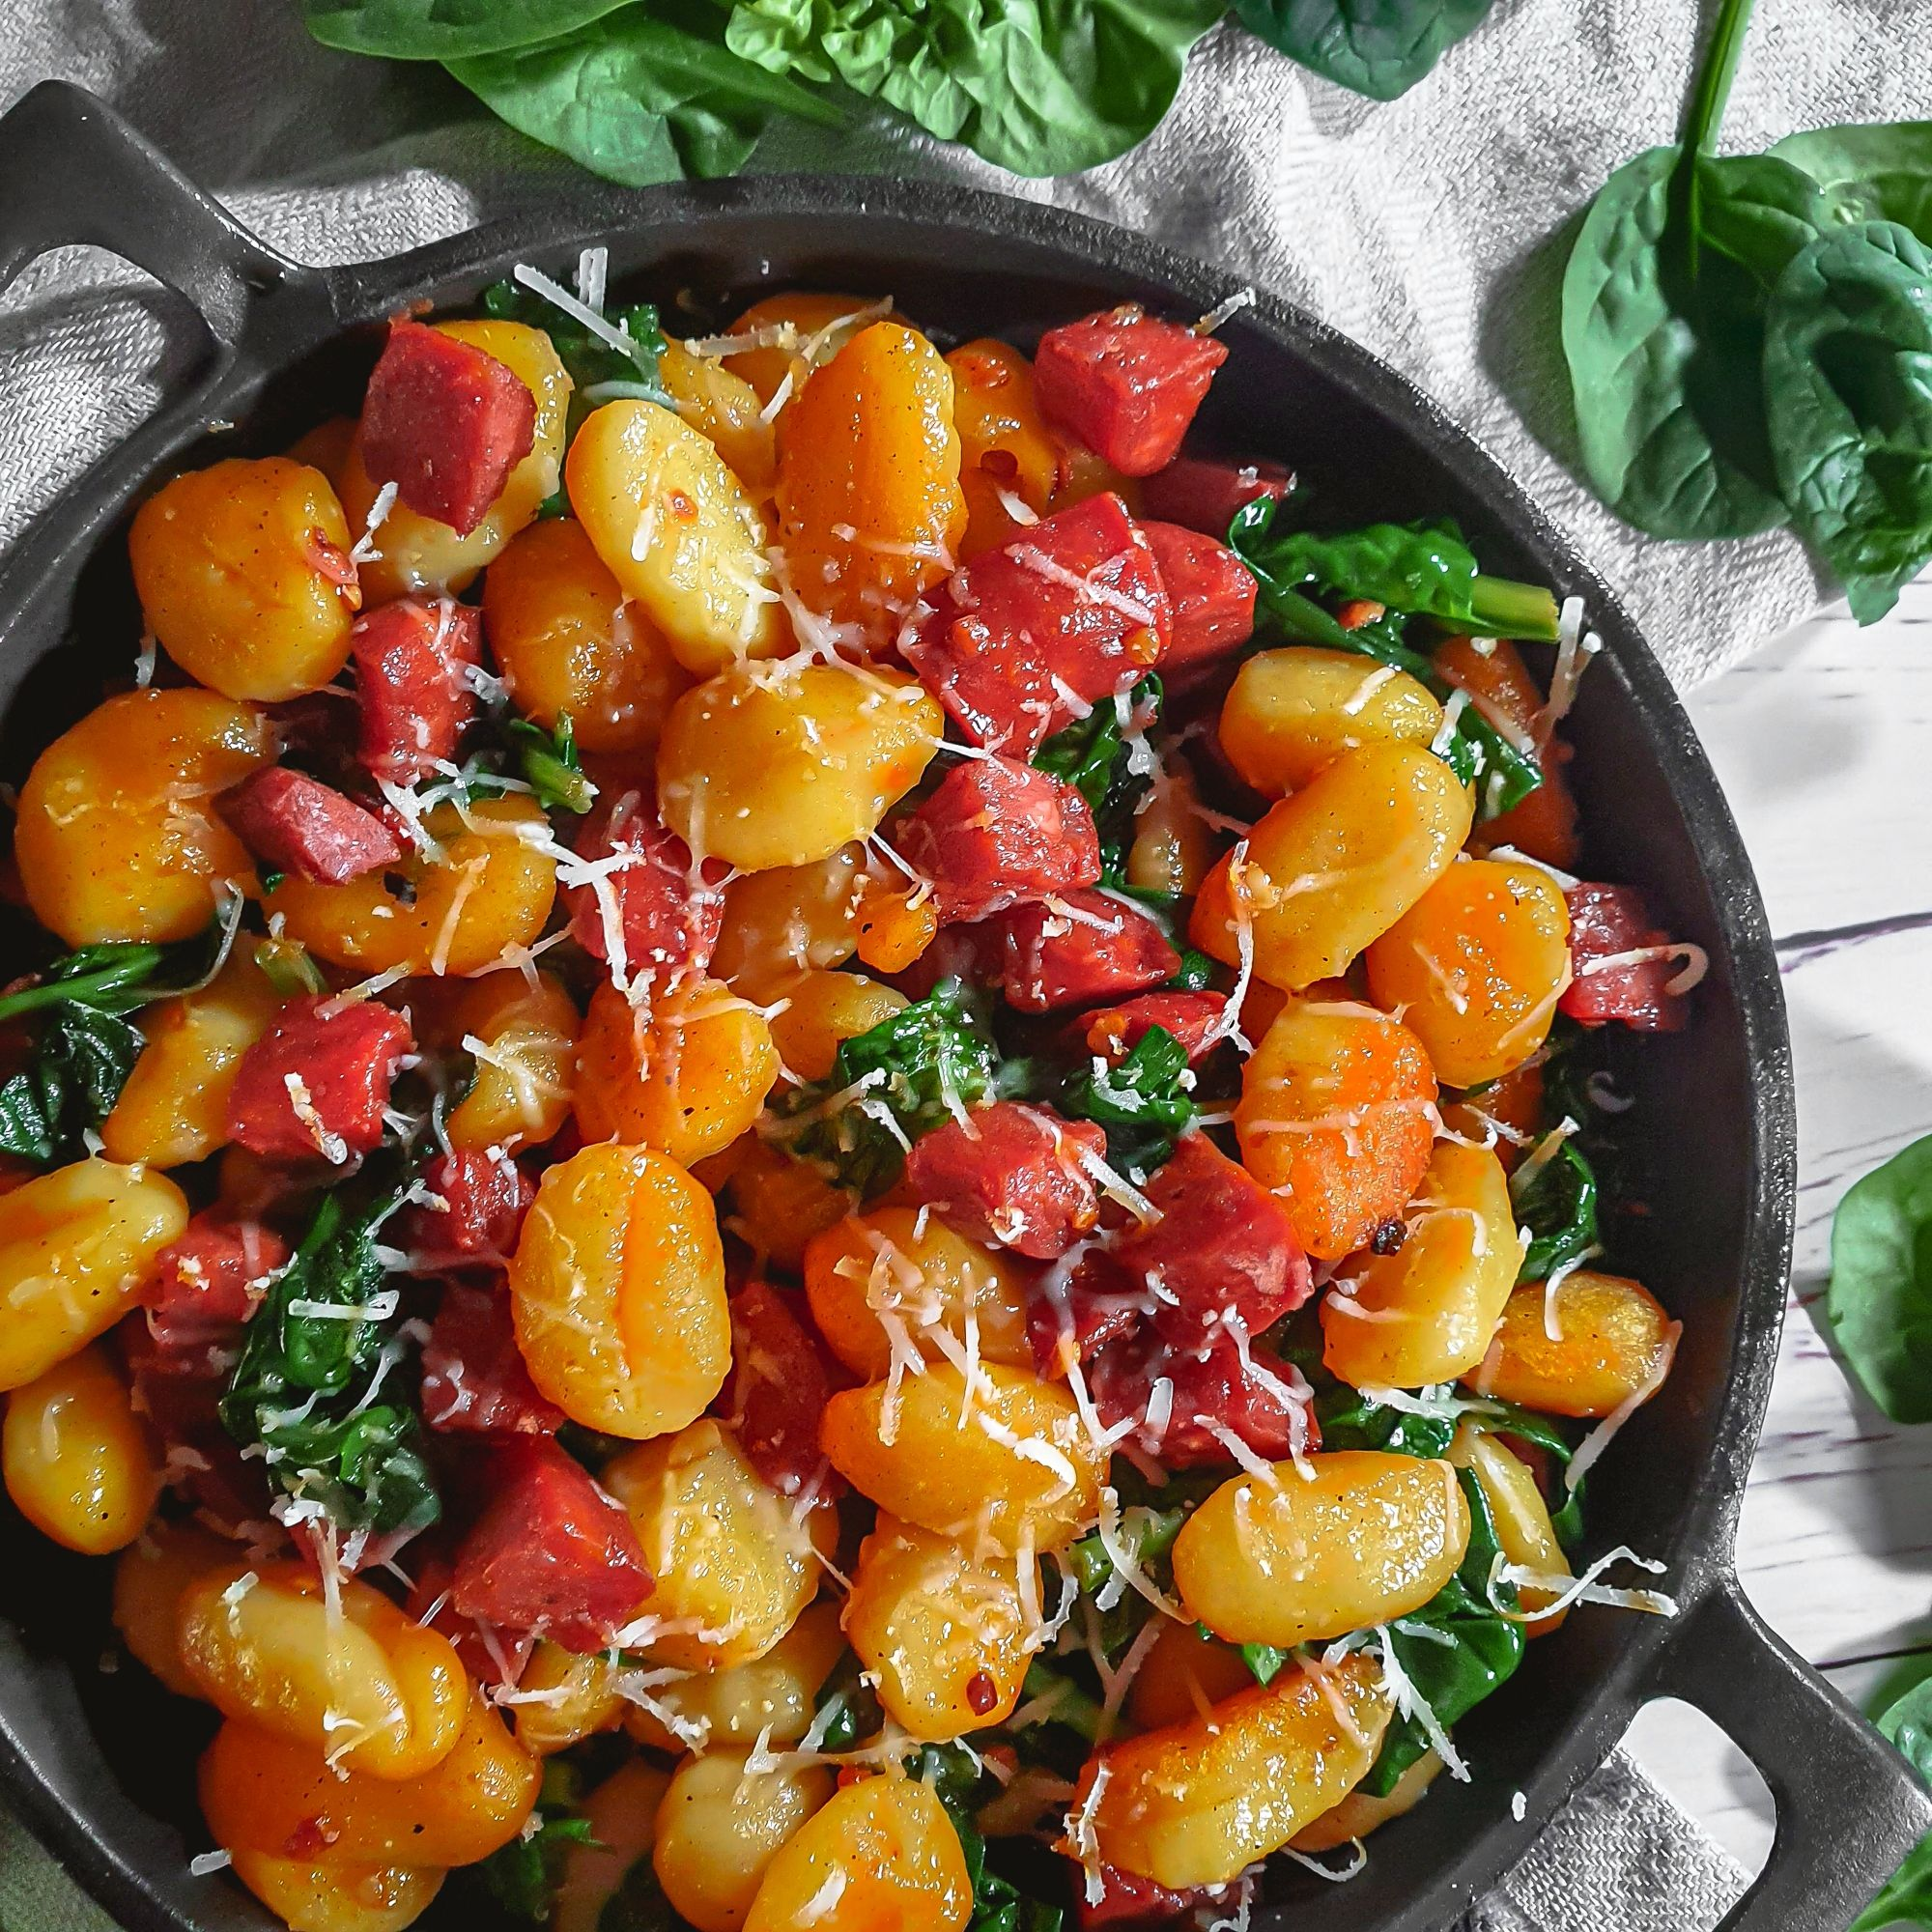 Pan Fried Gnocchi With Chorizo And Spinach Recipe Cooking With Bry Recipe In 2020 Gnocchi Recipes Easy Cooking Risotto Spinach Recipes